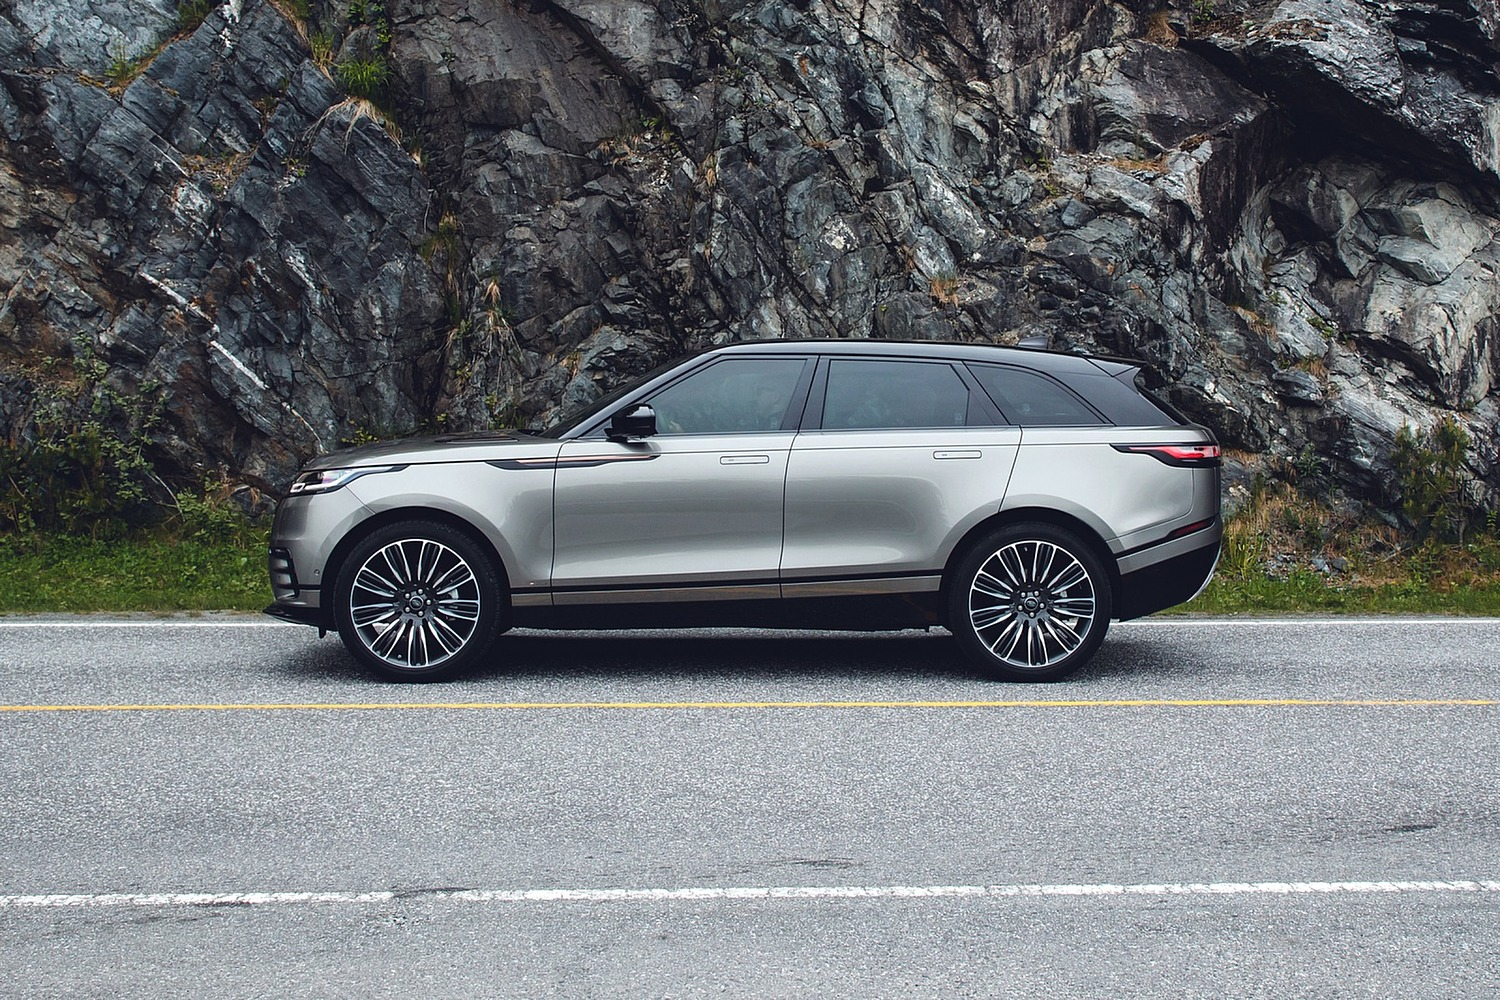 2018 Land Rover Range Rover Velar First Edition 4dr SUV Profile Shown